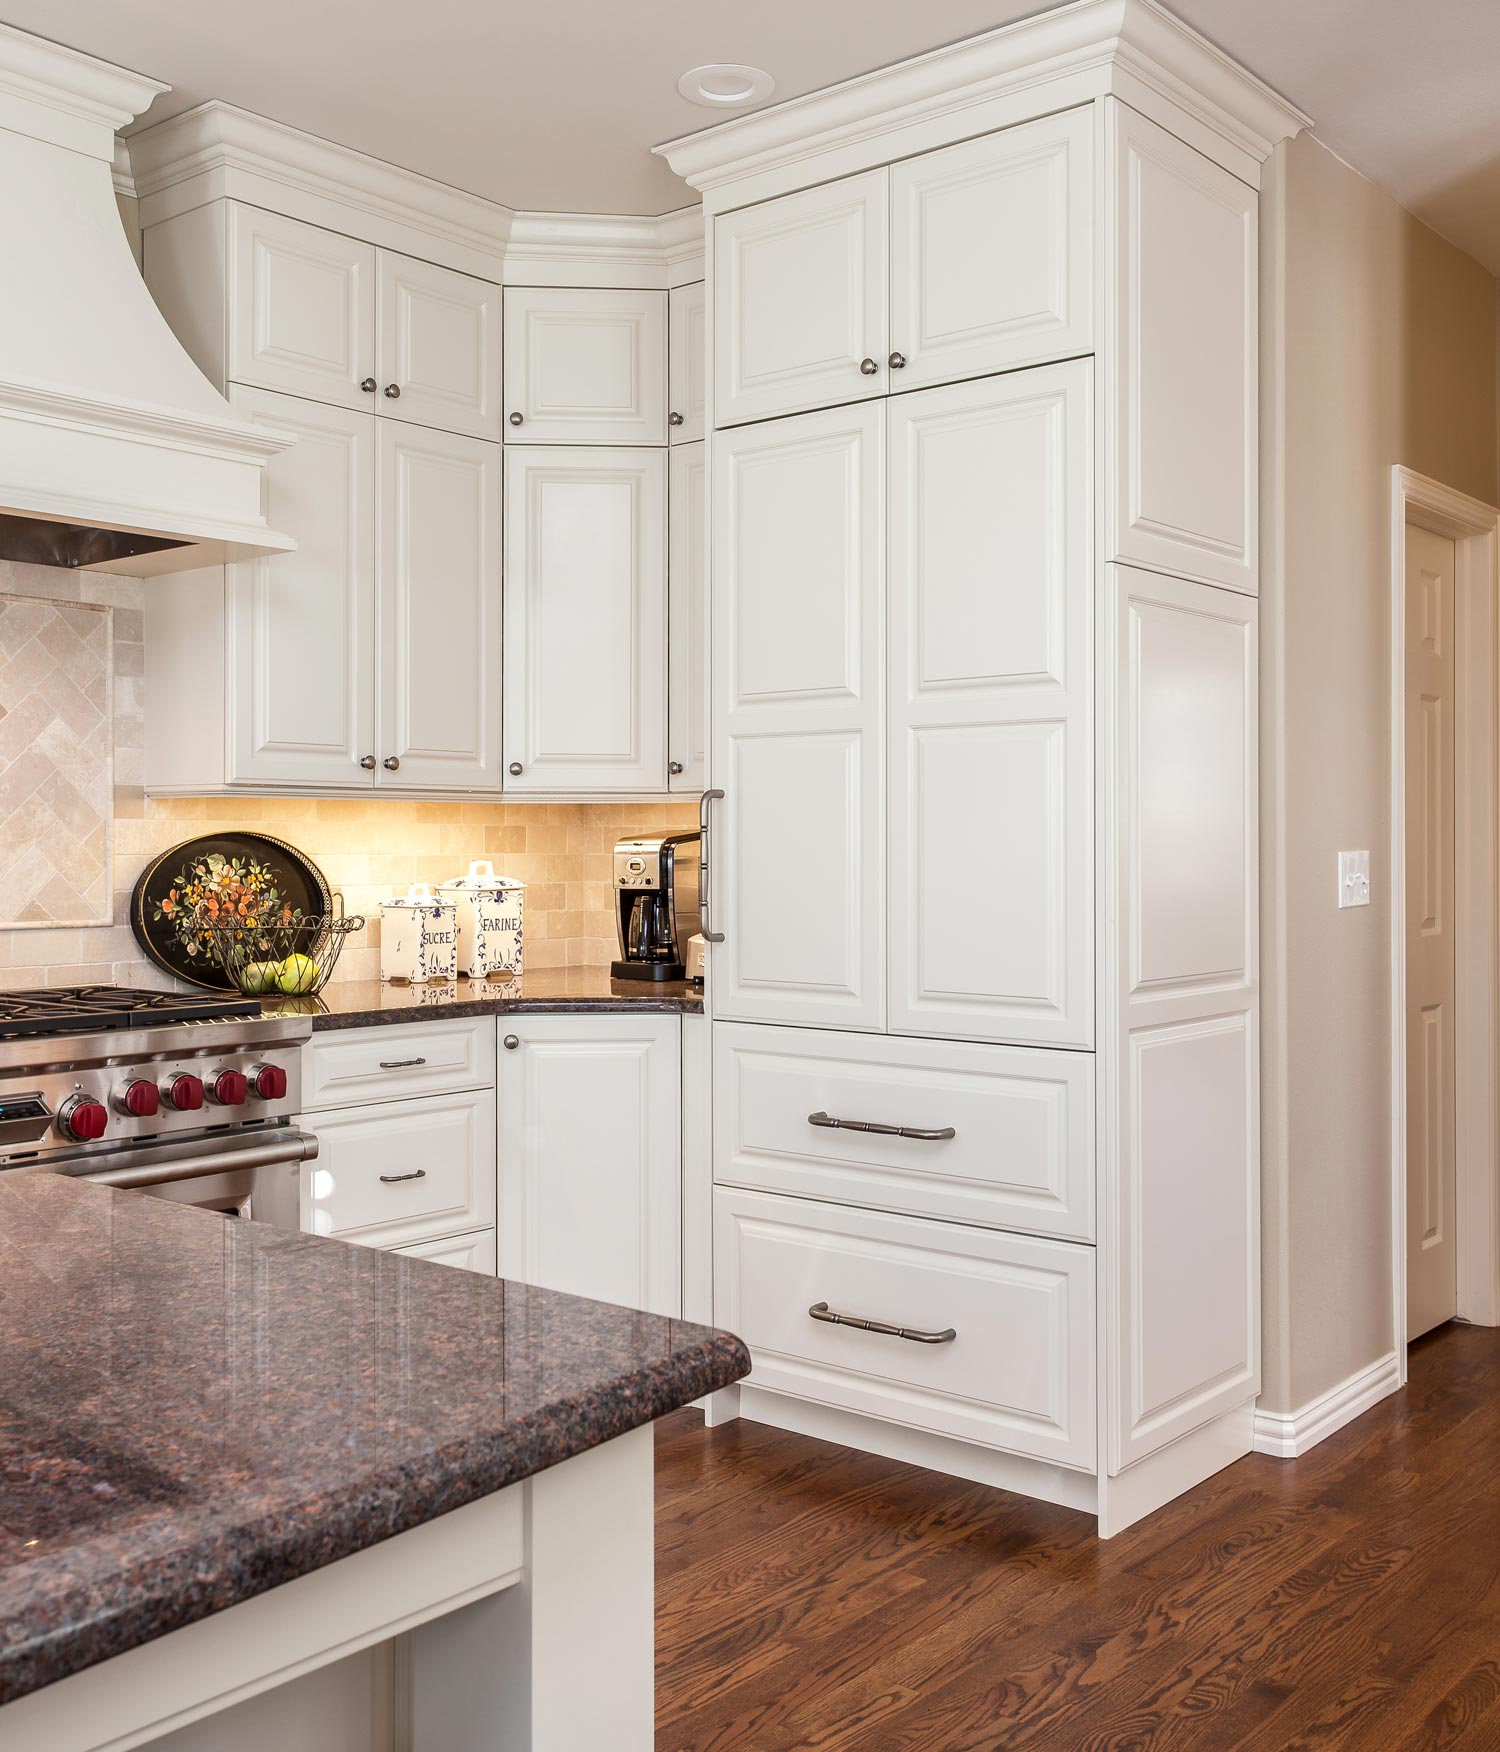 featured new remodels kitchen remodel denver Luxury meets Function in this Greenwood Village Kitchen Remodel